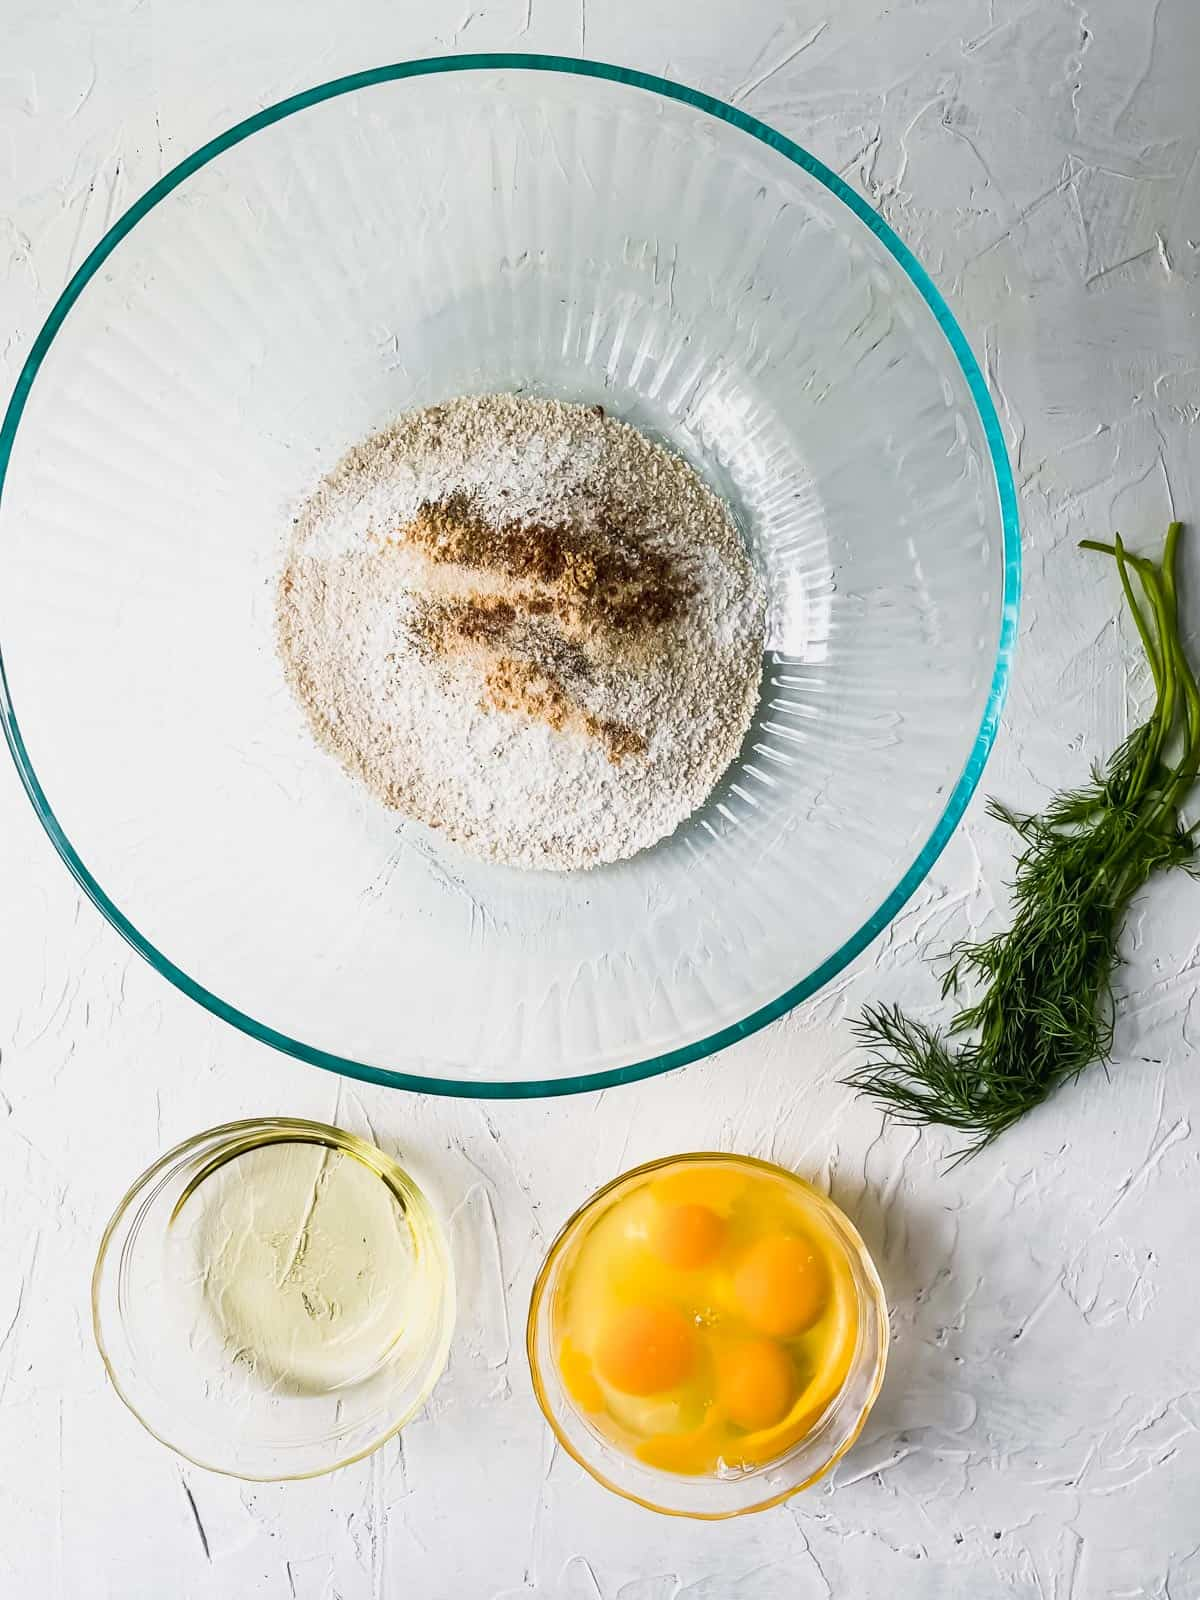 matzo ball dry ingredients in a glass bowl with eggs, oil, and dill on the side